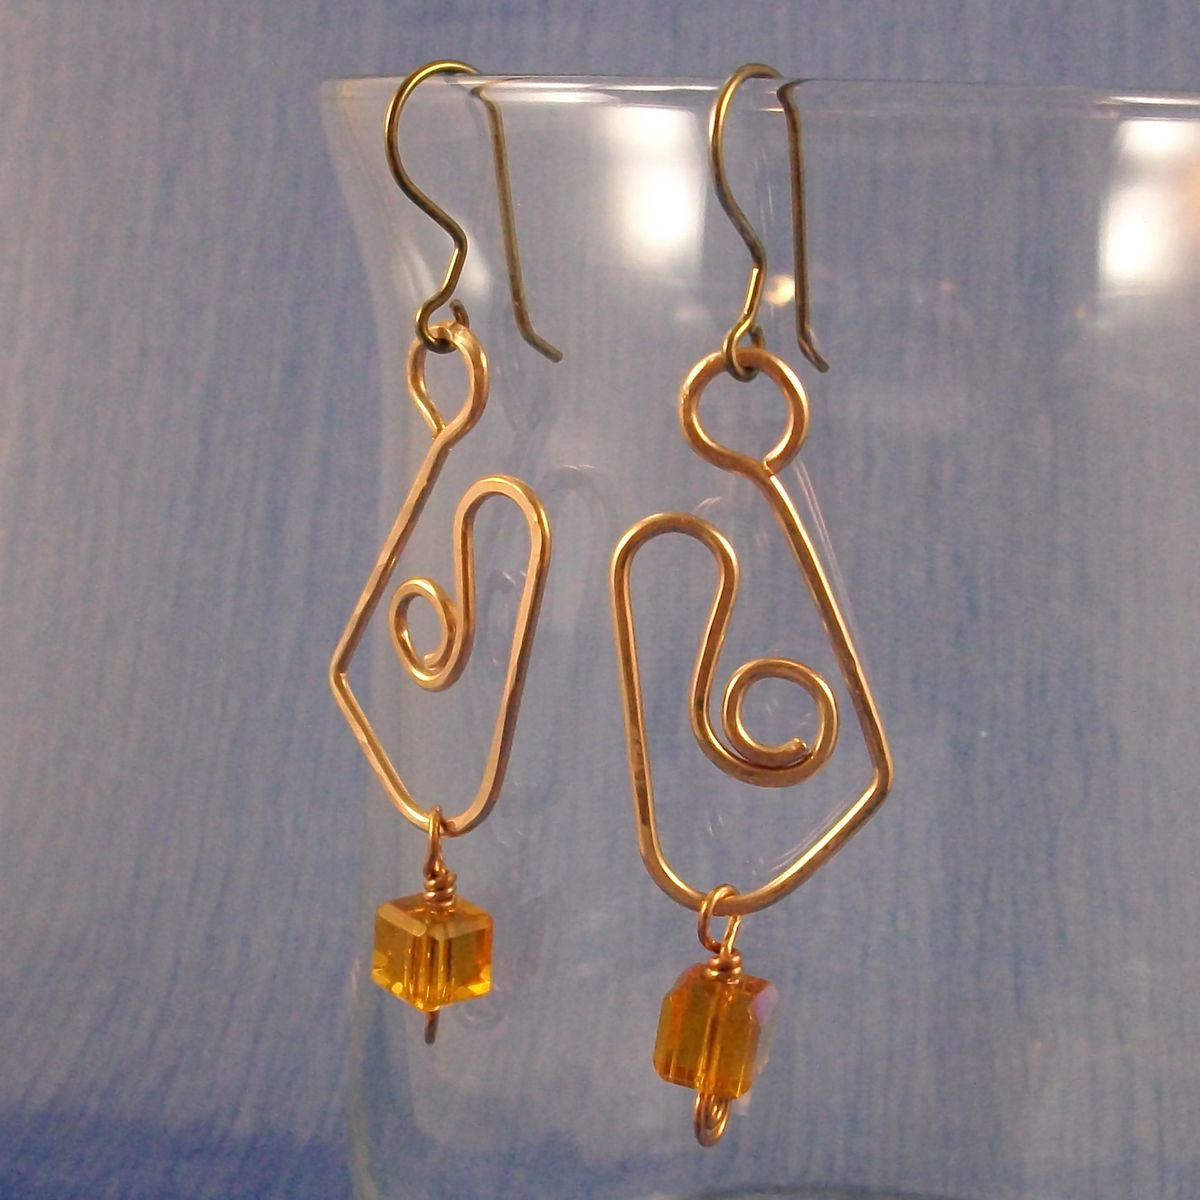 Bronze Wirework Earrings with Niobium Earwires and Amber Glass Cube Accent - product images  of